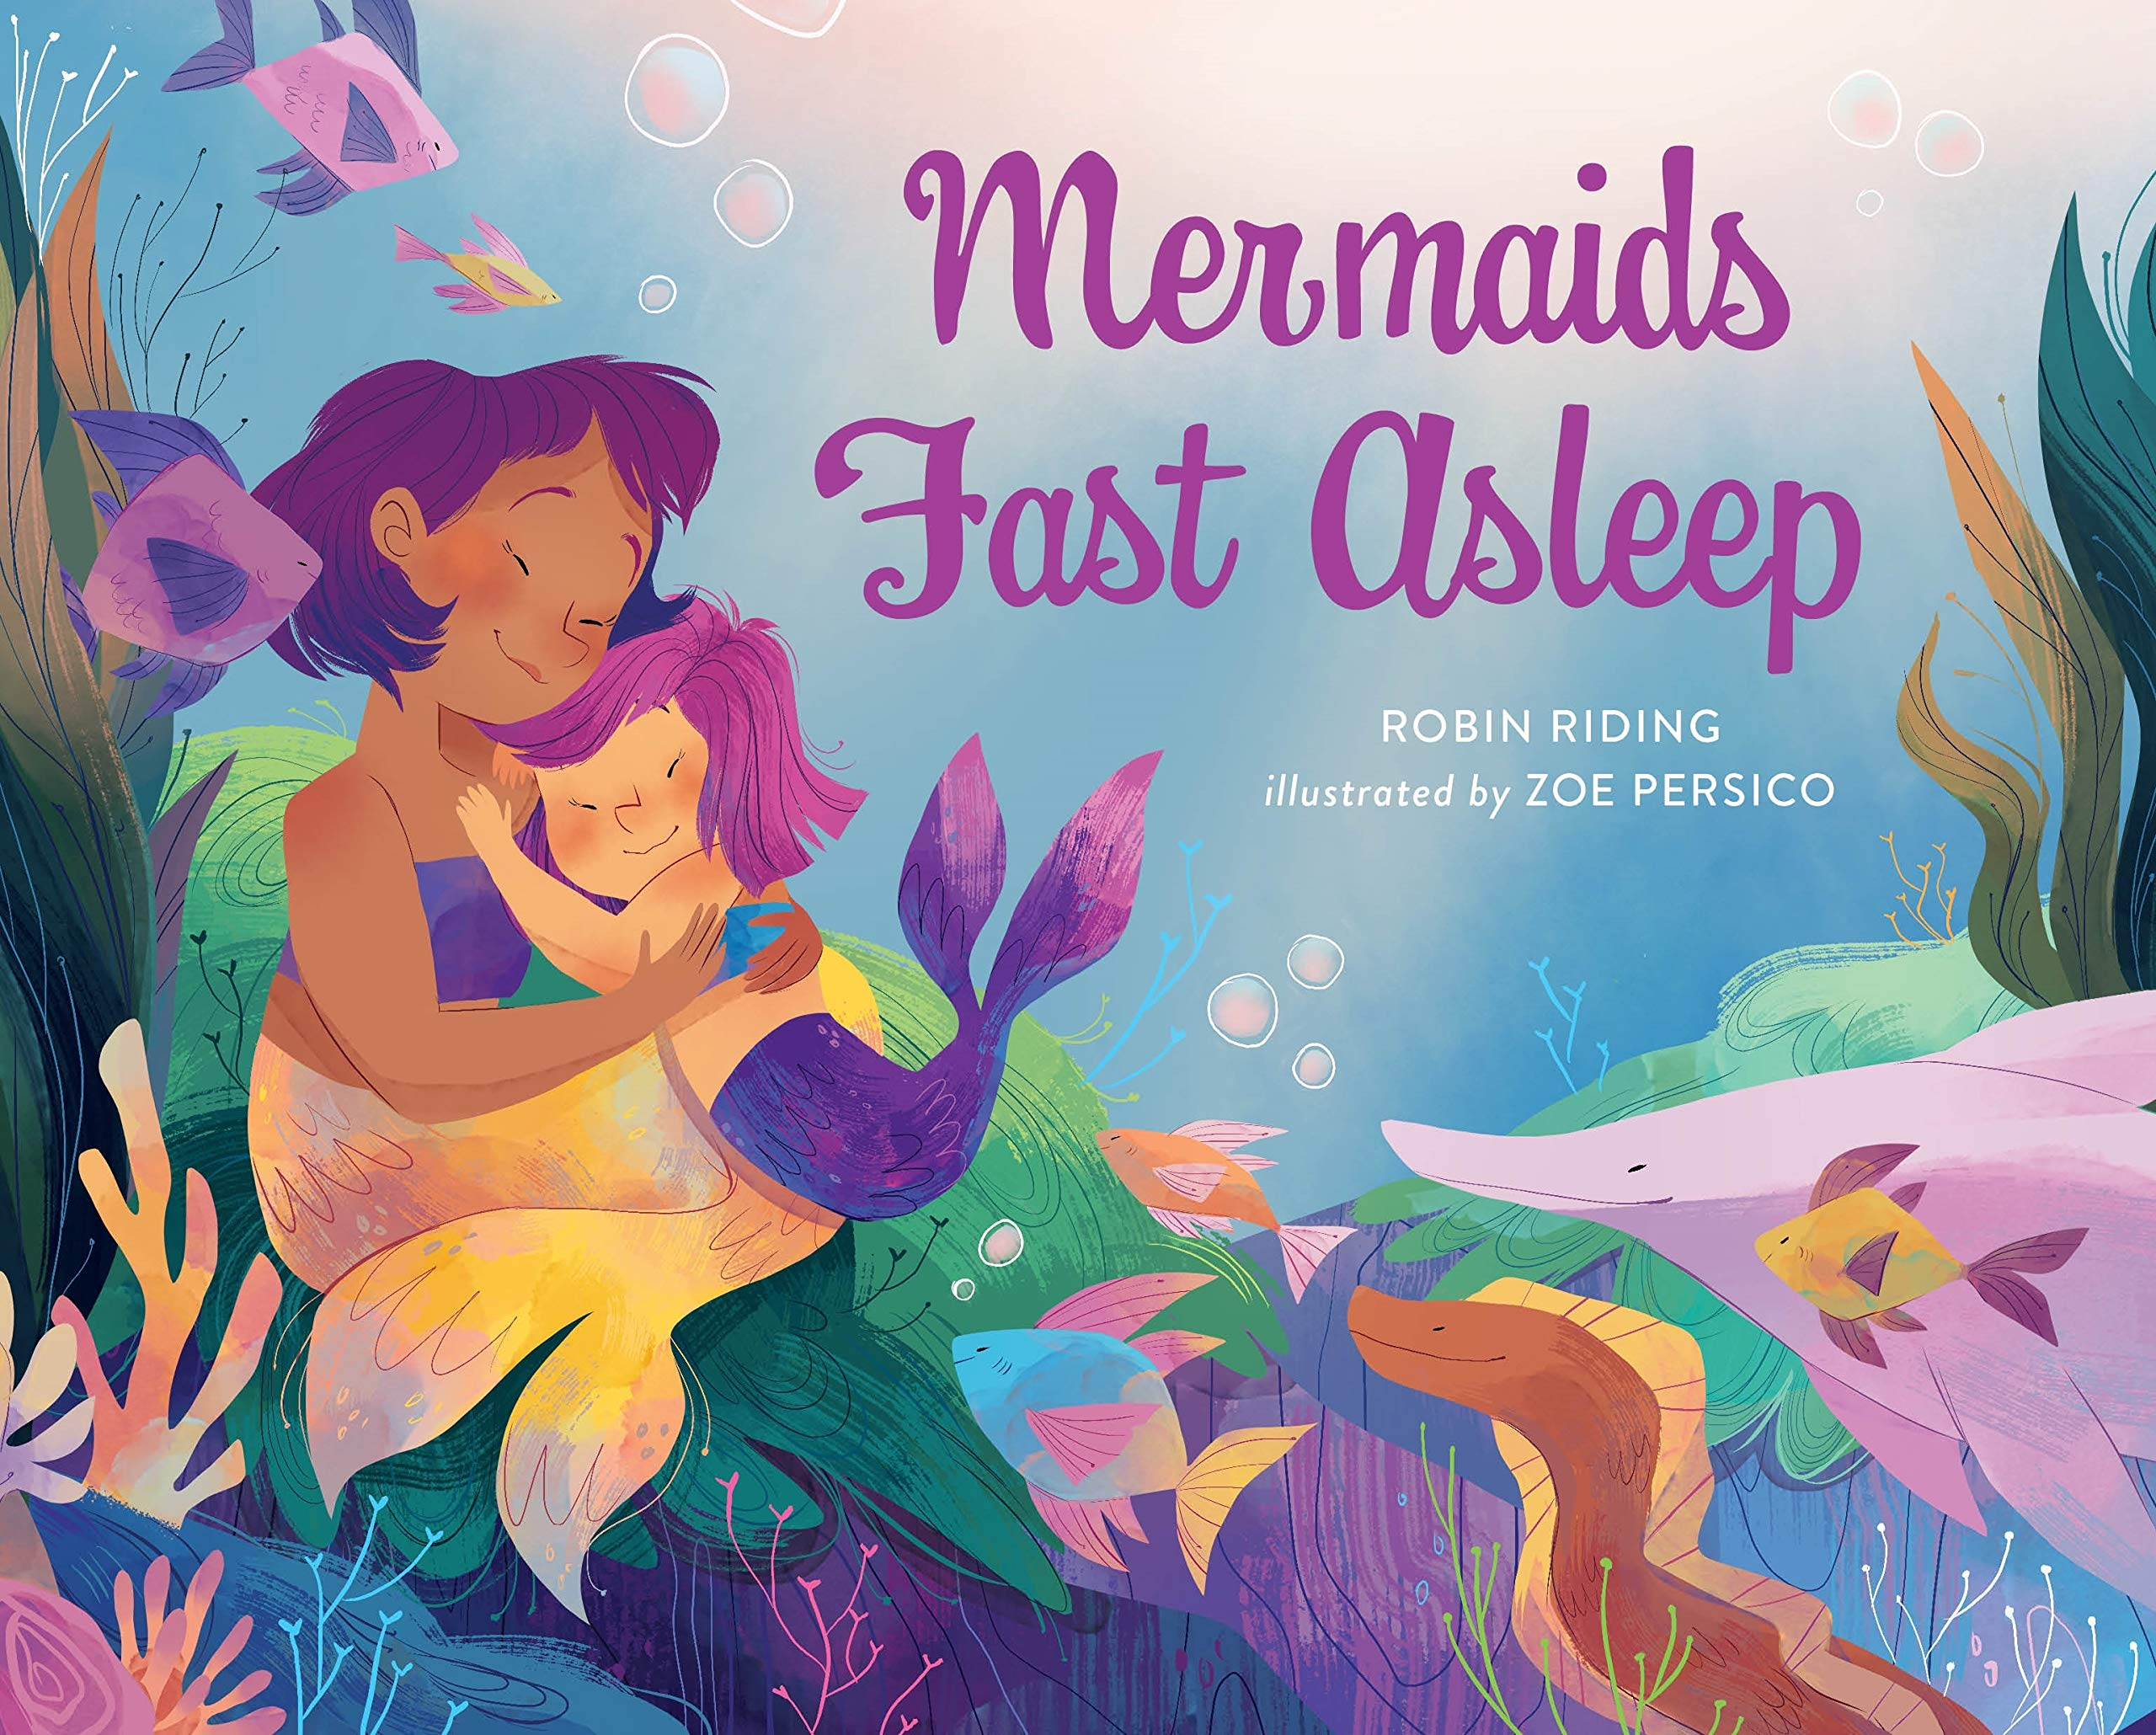 Image result for Mermaids Fast Asleep Robin Riding